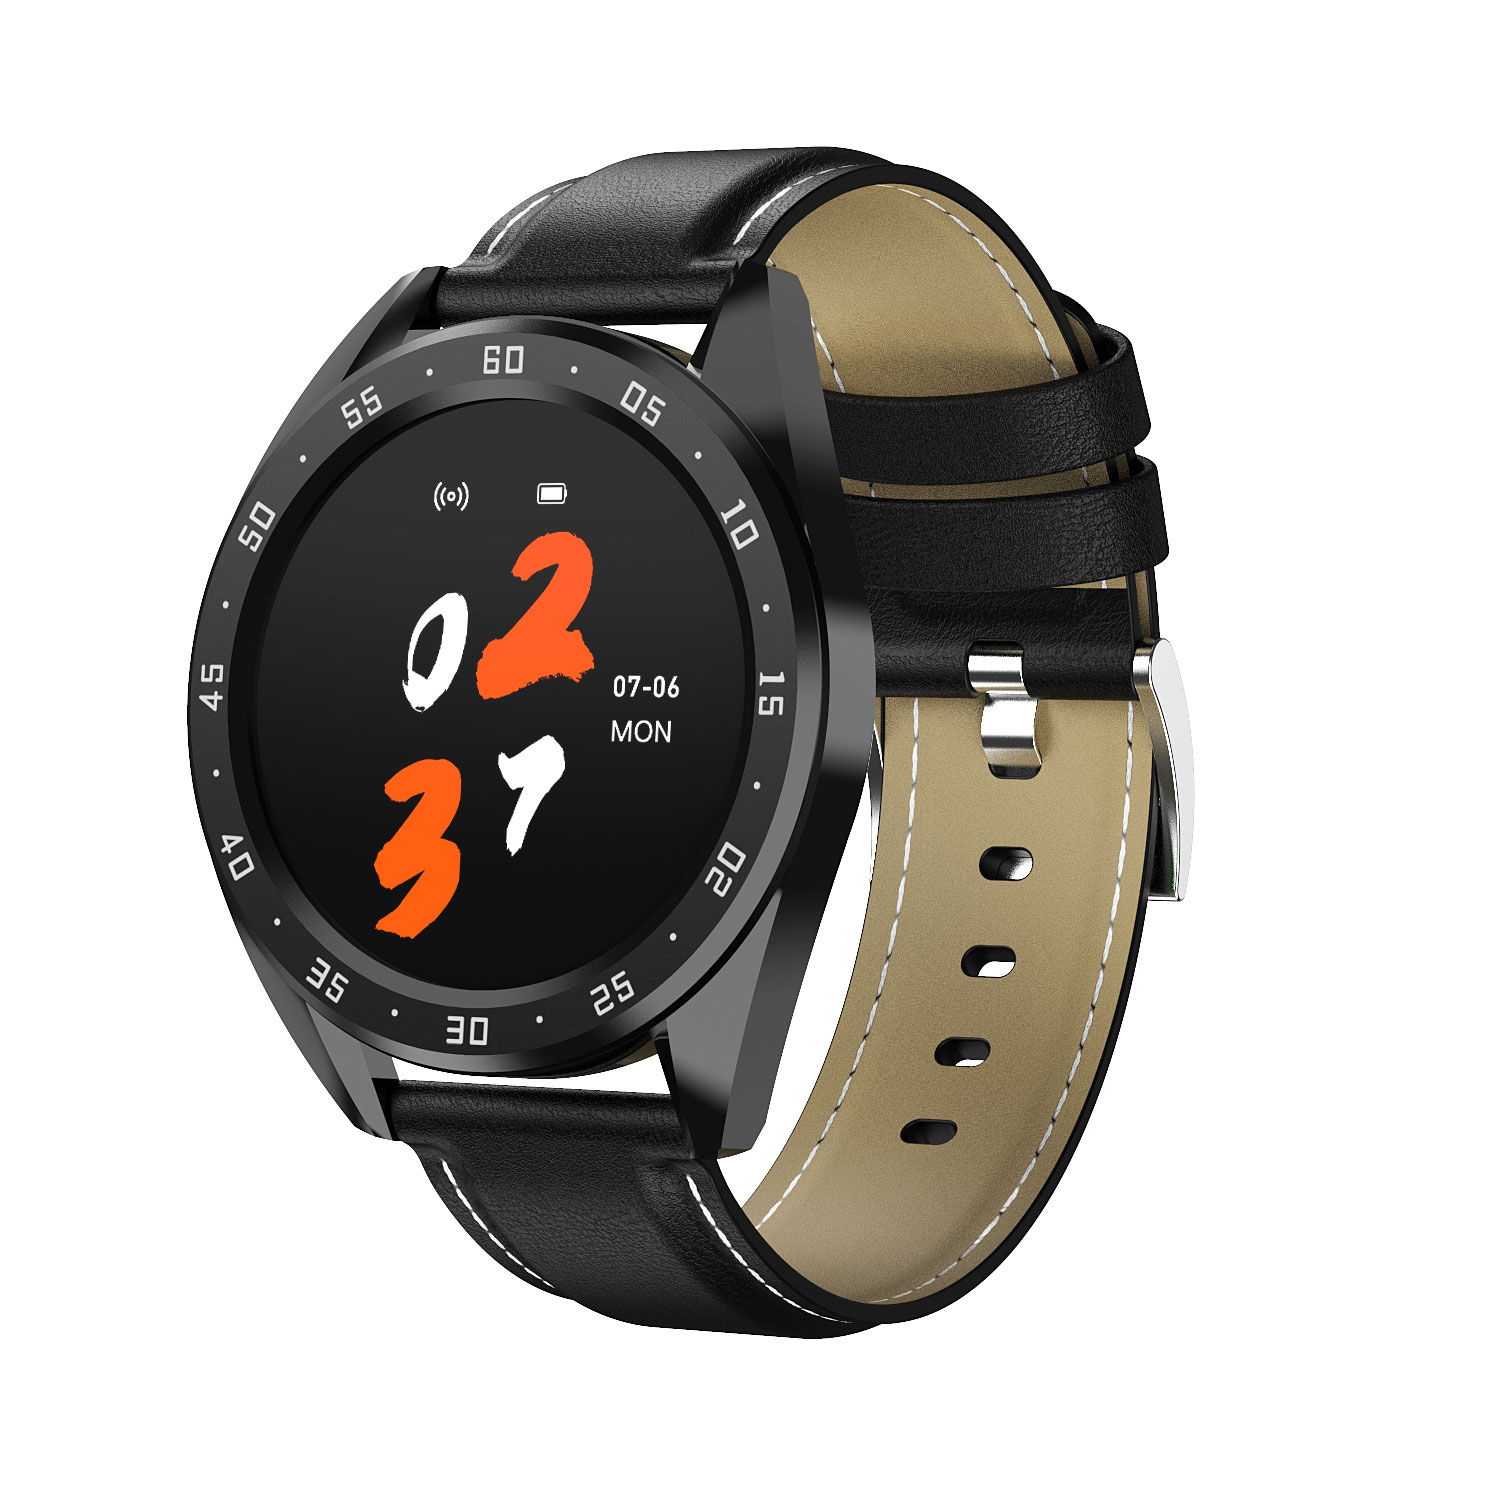 2020 Custom <strong>x10</strong> Big Full Color Touch <strong>Screen</strong> IP67 Android Smart Bracelet Watch